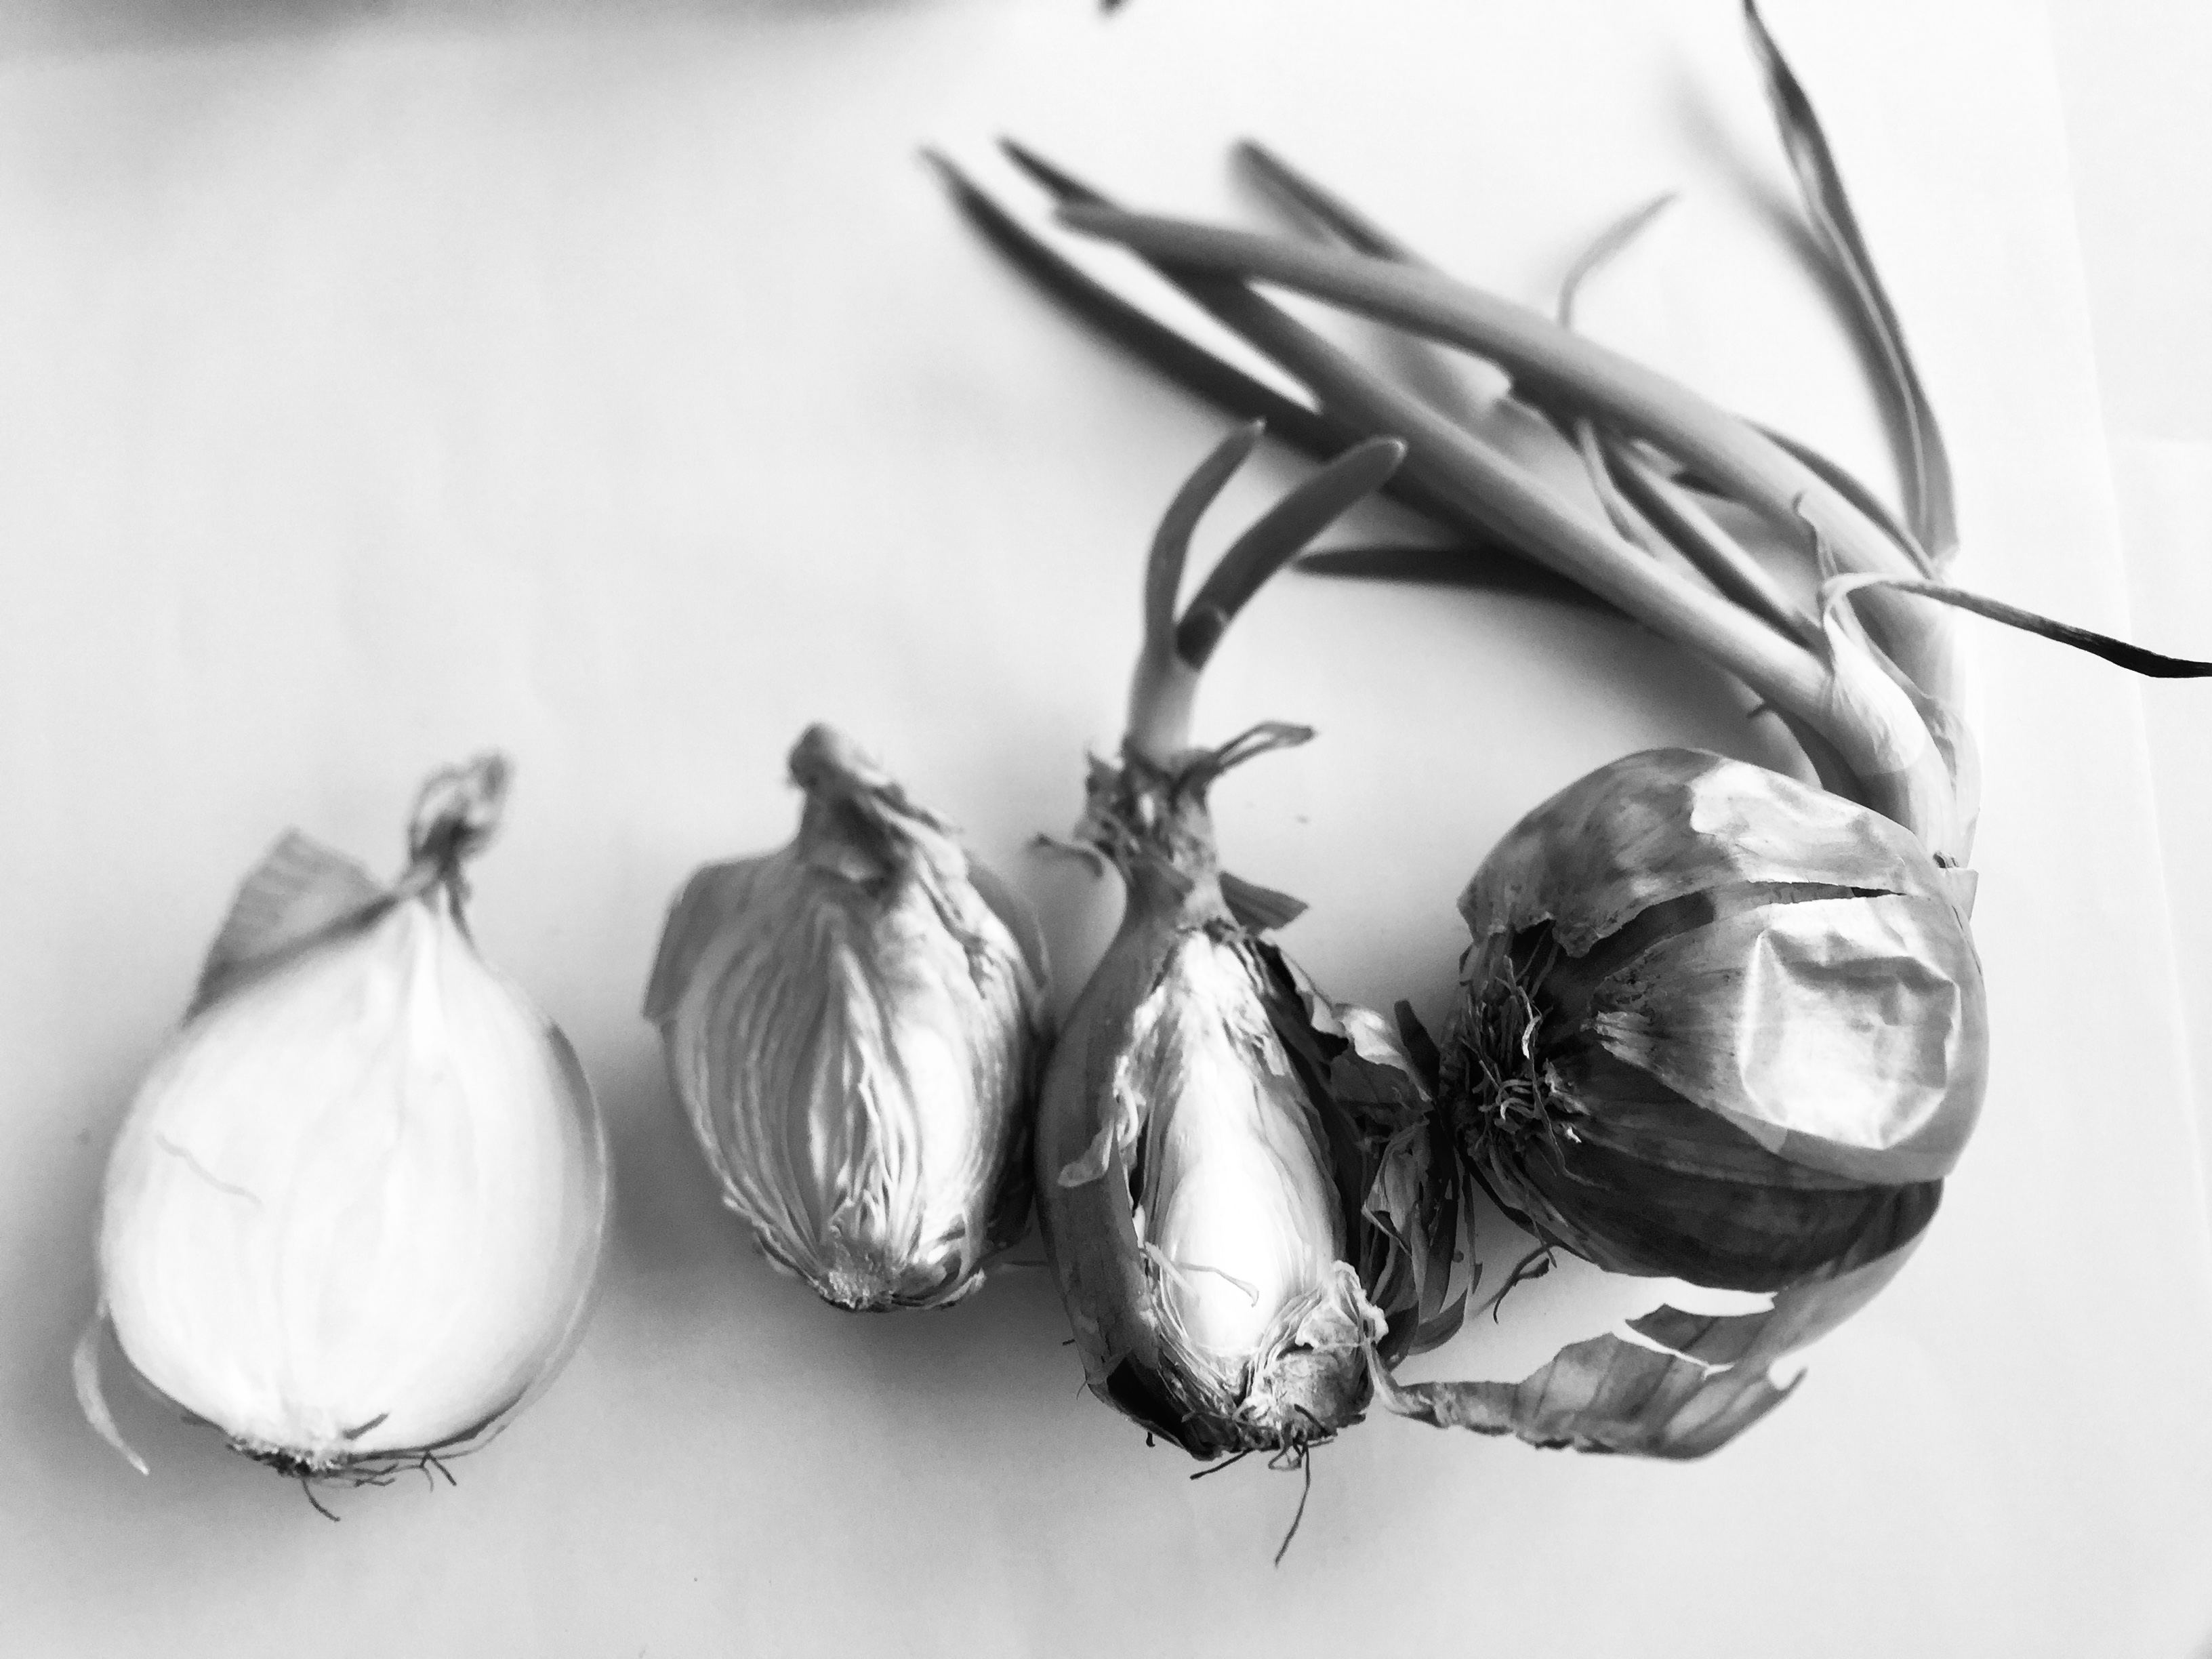 Onions. Photograph: Merrie Joy Williams